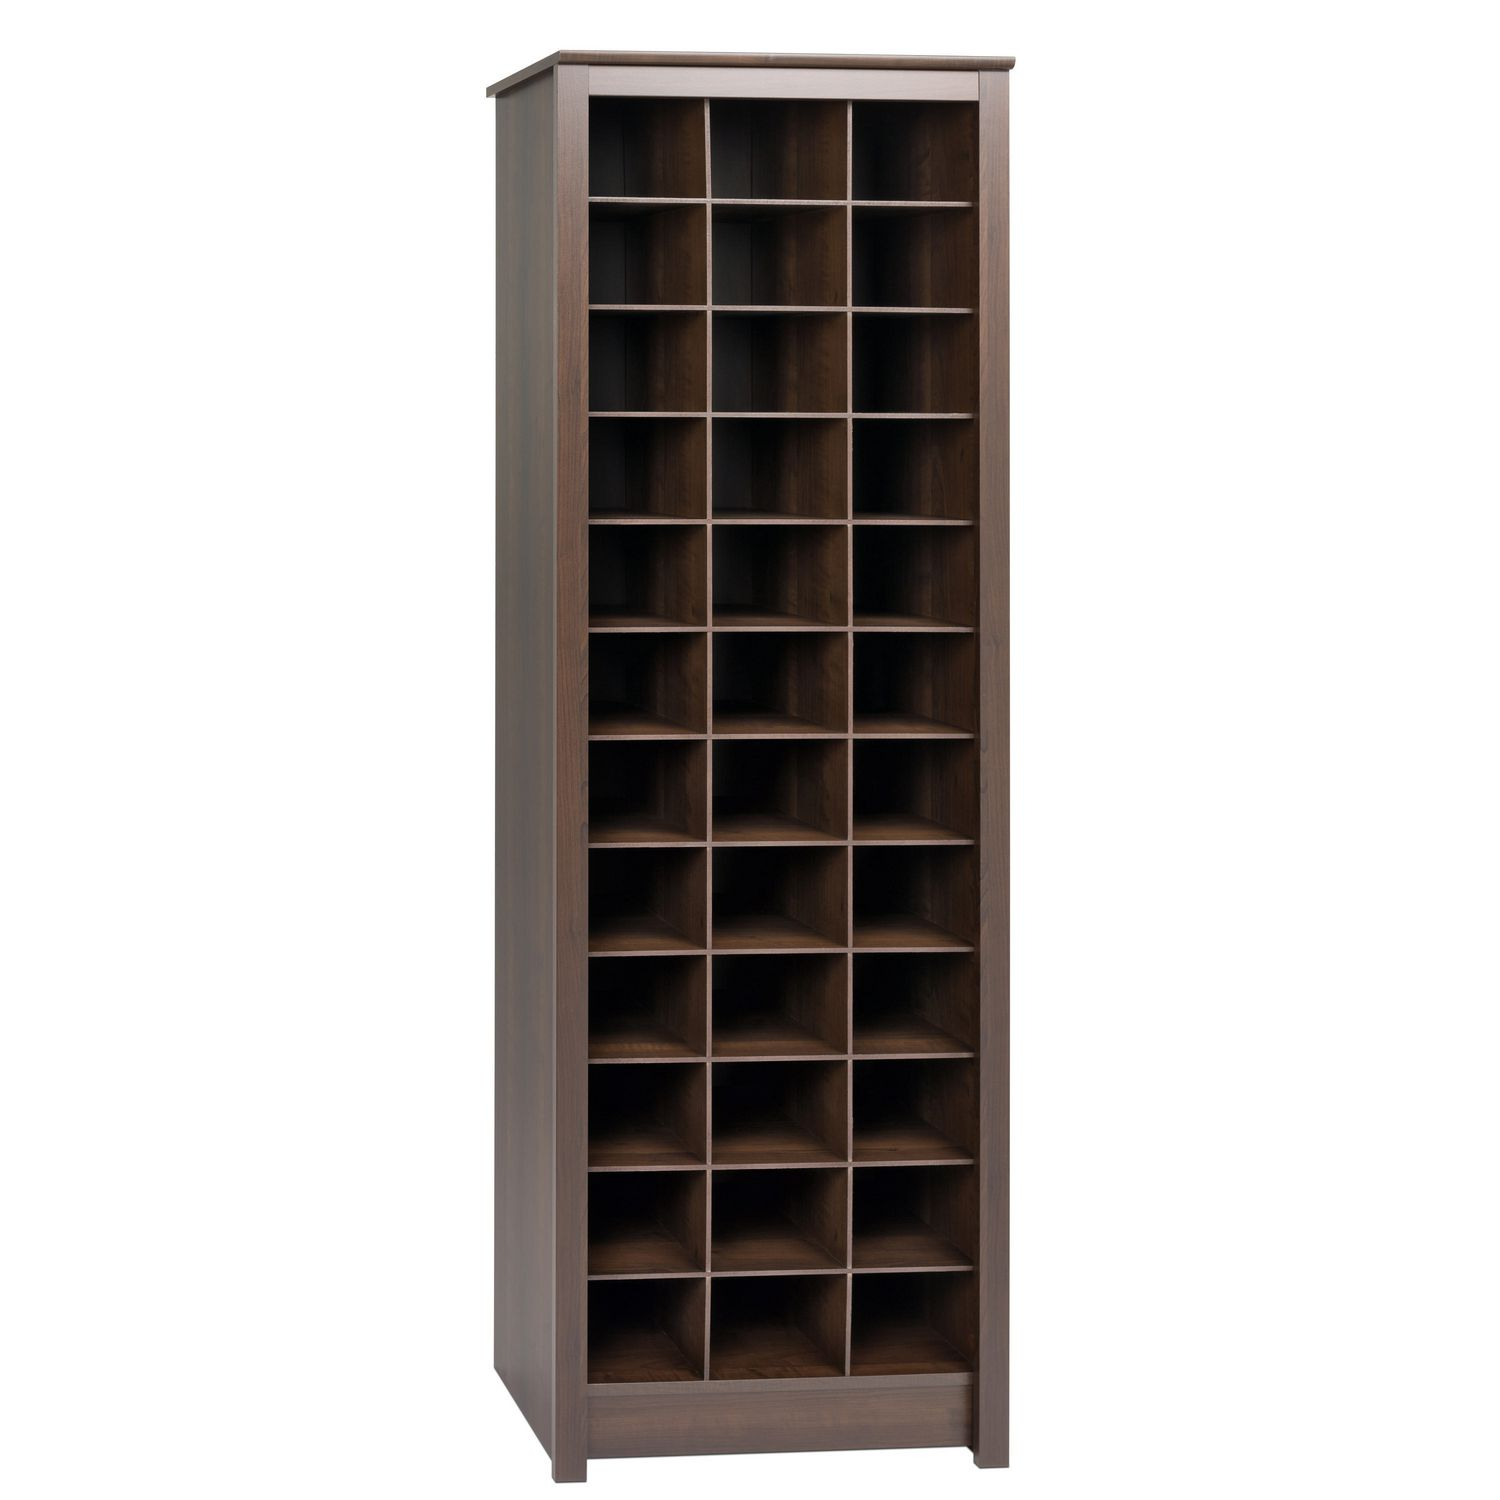 walnut furniture tall cupboard fall g shoe strathmore cabinet solid organizer